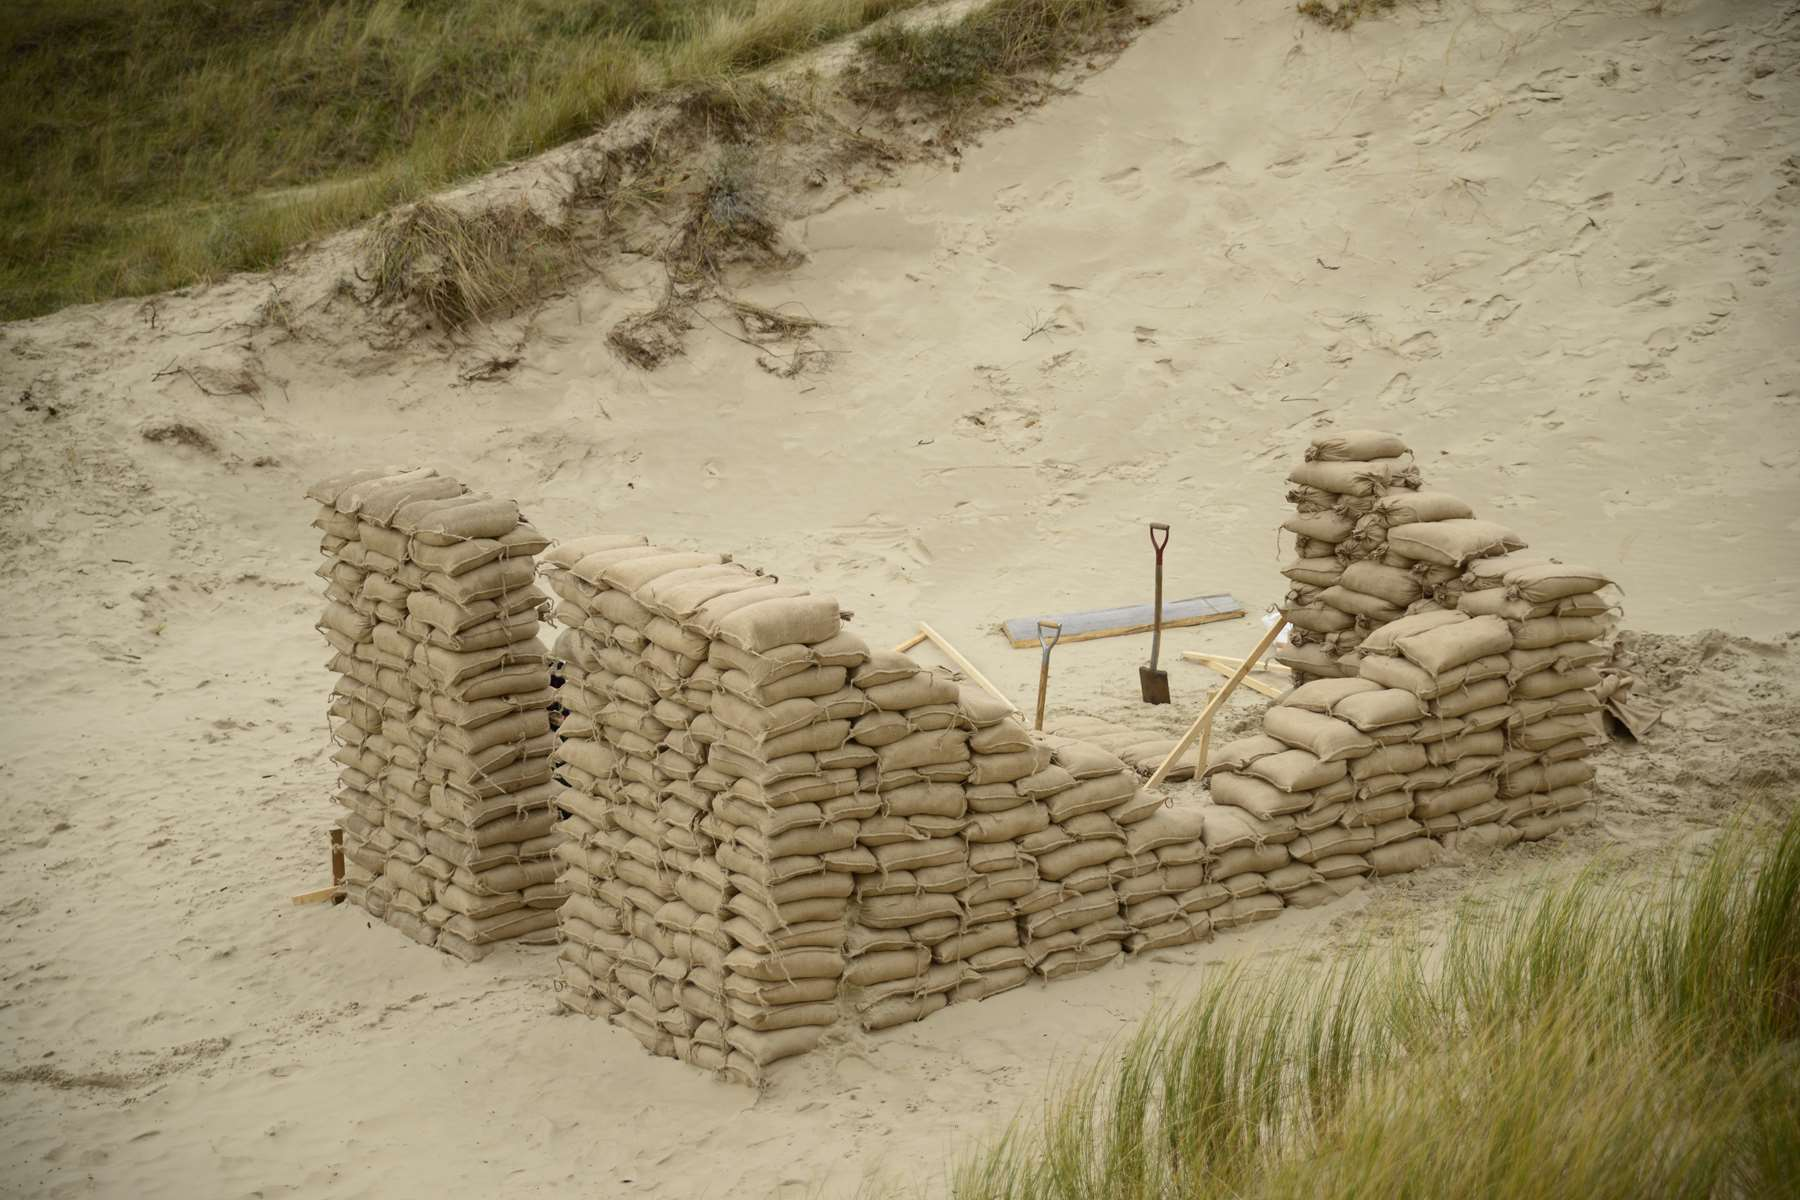 THE HOUSE IN THE DUNES, The Netherlands, 2013. Installation by Karl Chilcott.